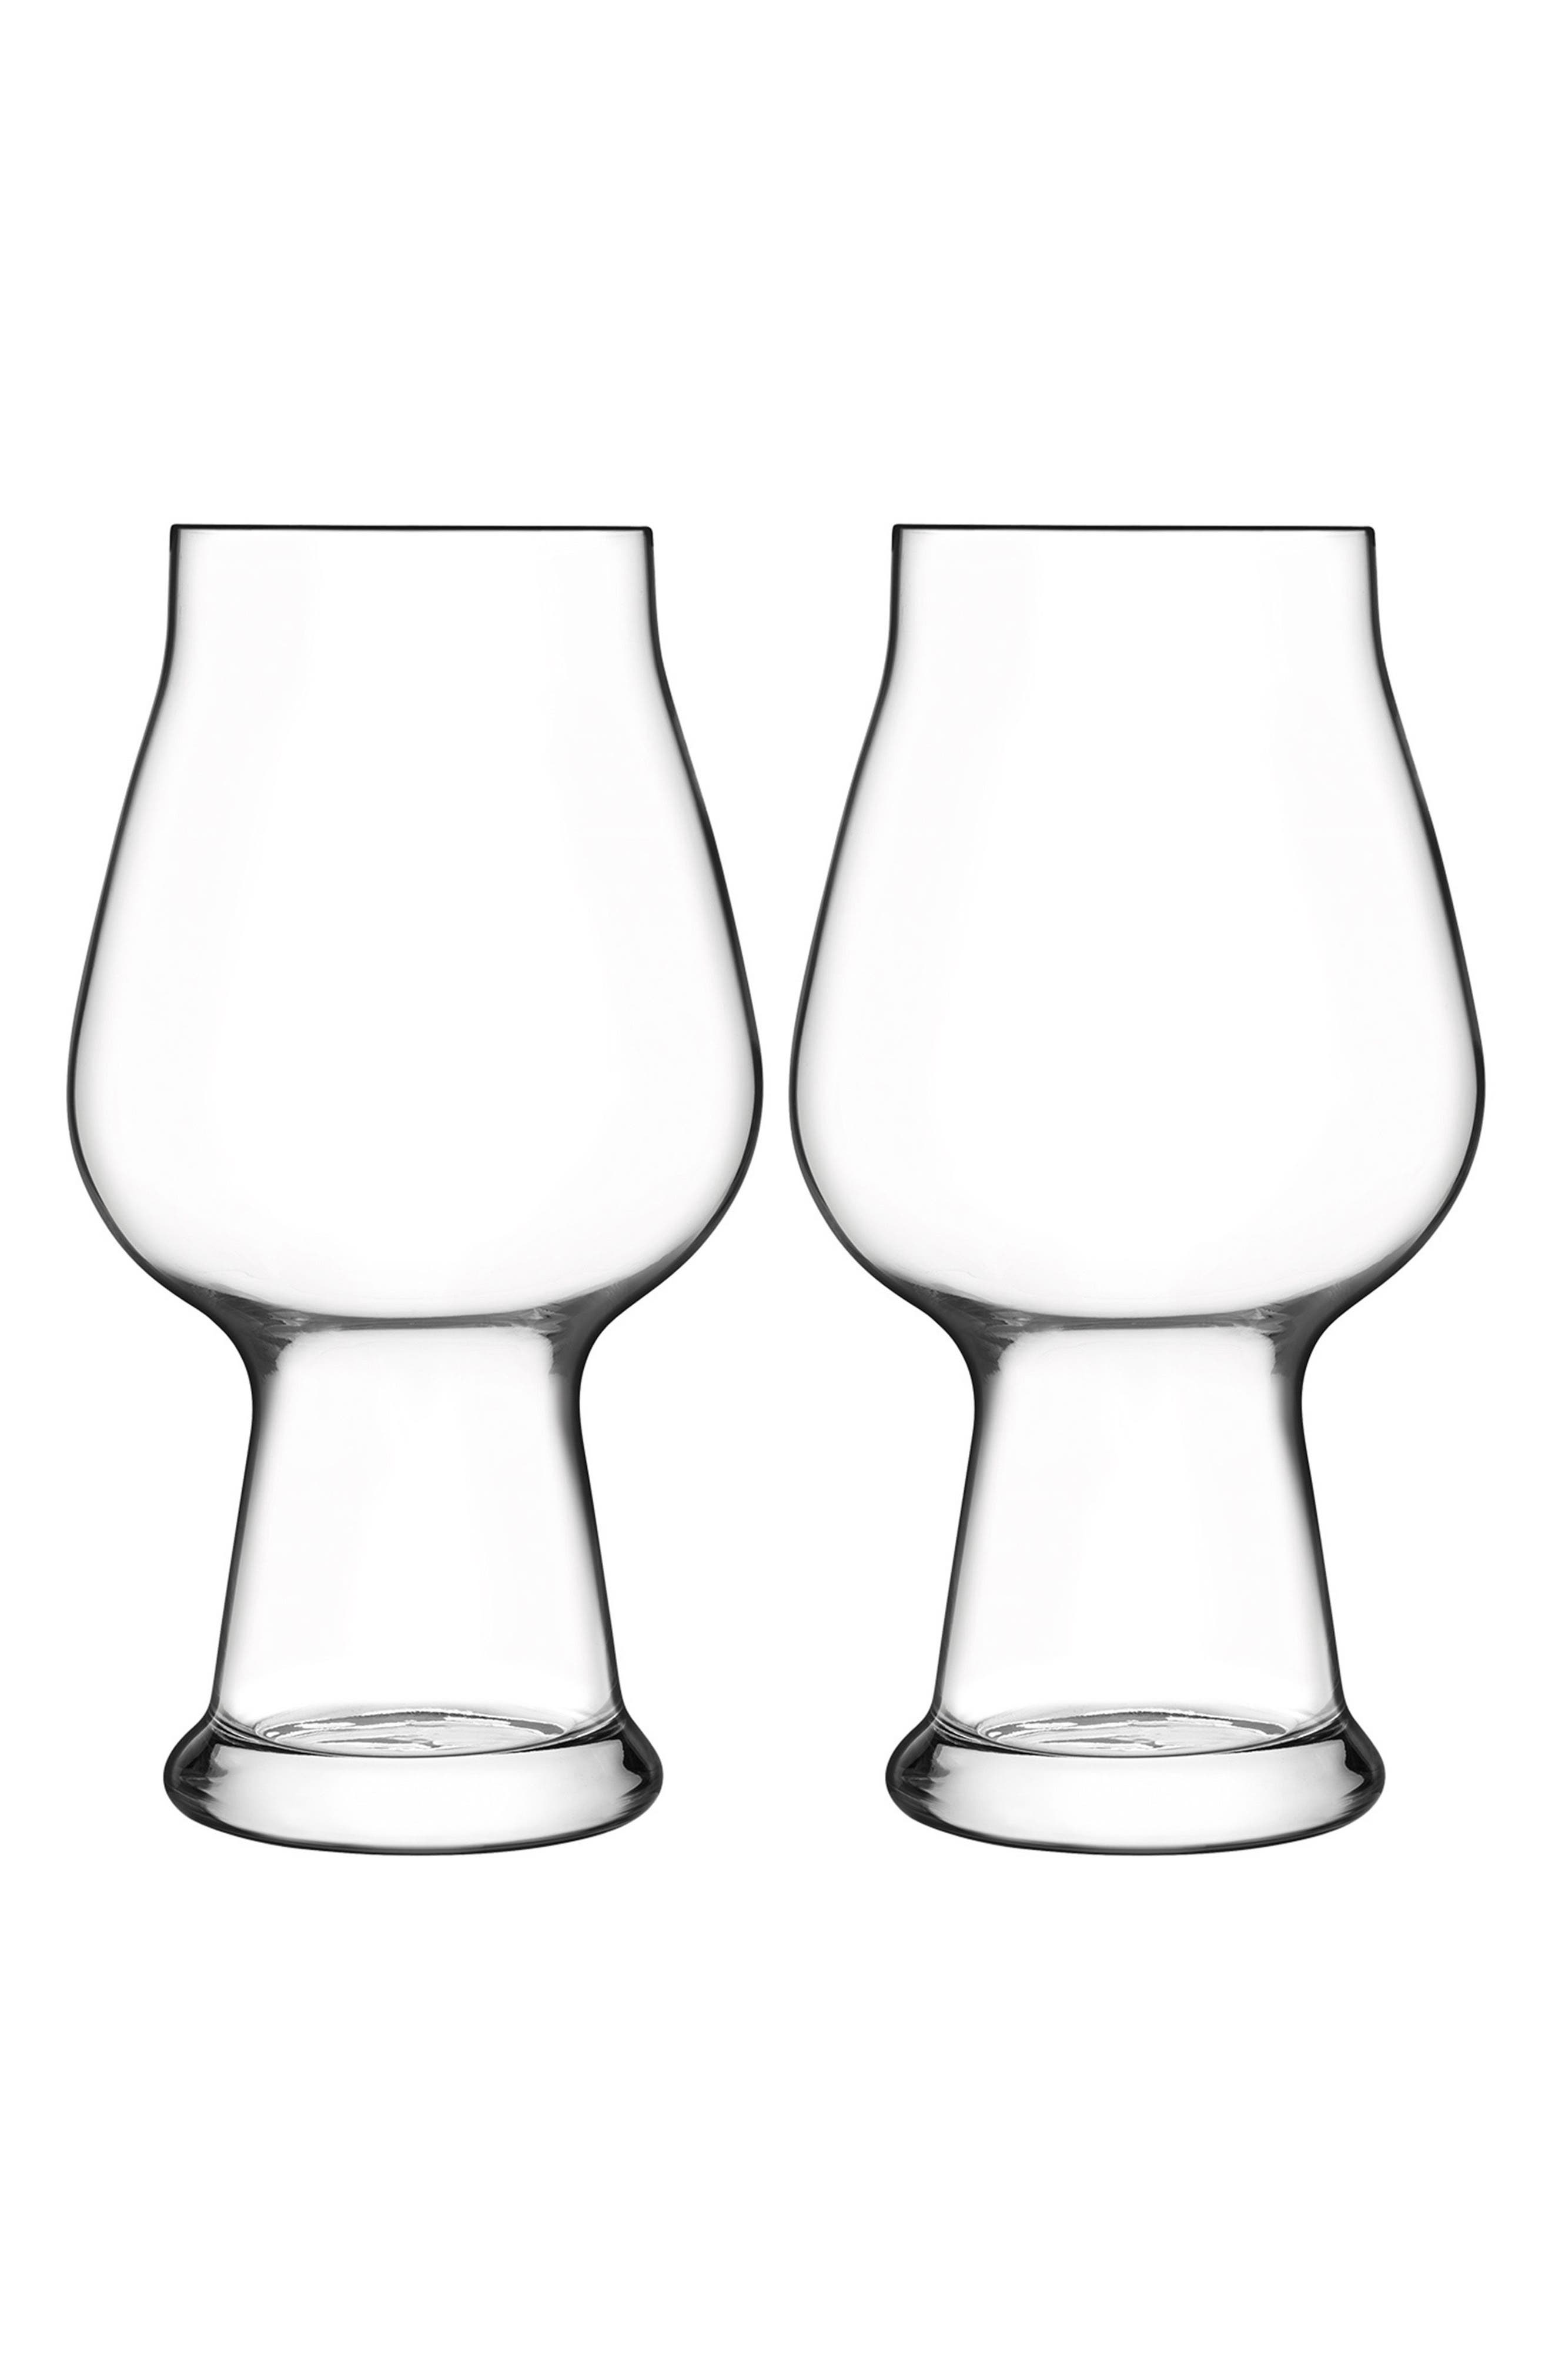 Birrateque Set of 2 Stout Glasses,                             Main thumbnail 1, color,                             100